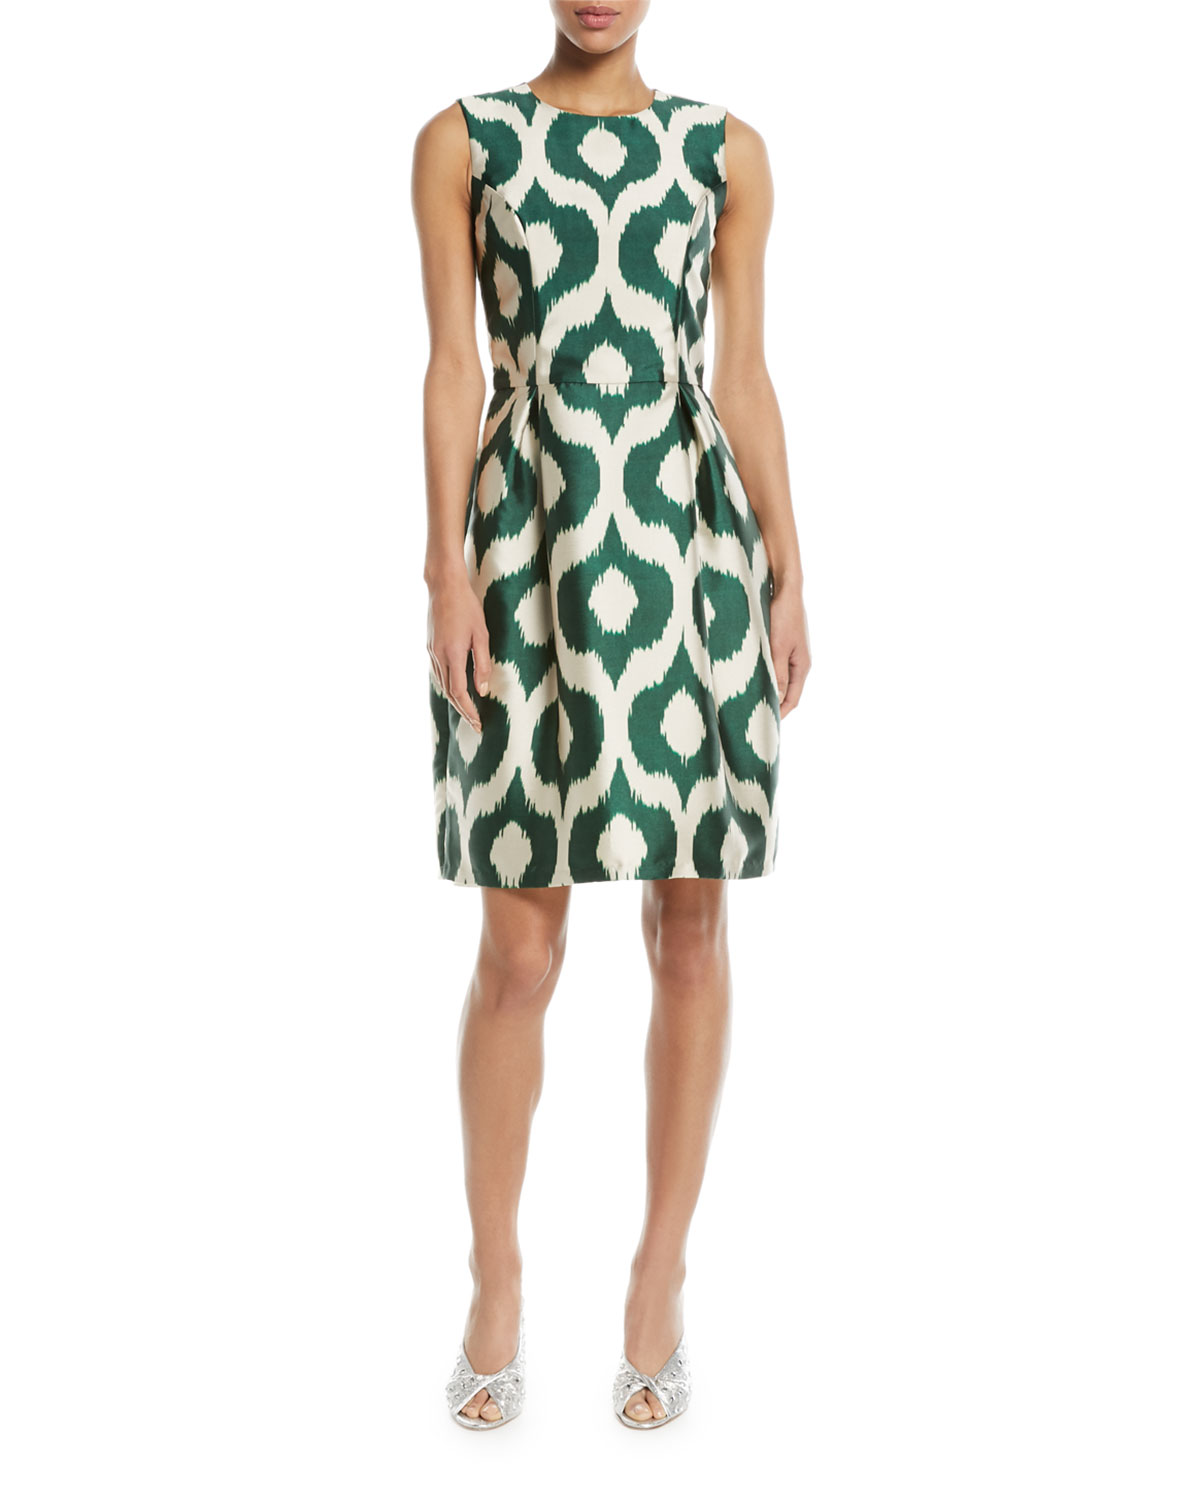 Divan Batik-Print Sleeveless Sheath Dress